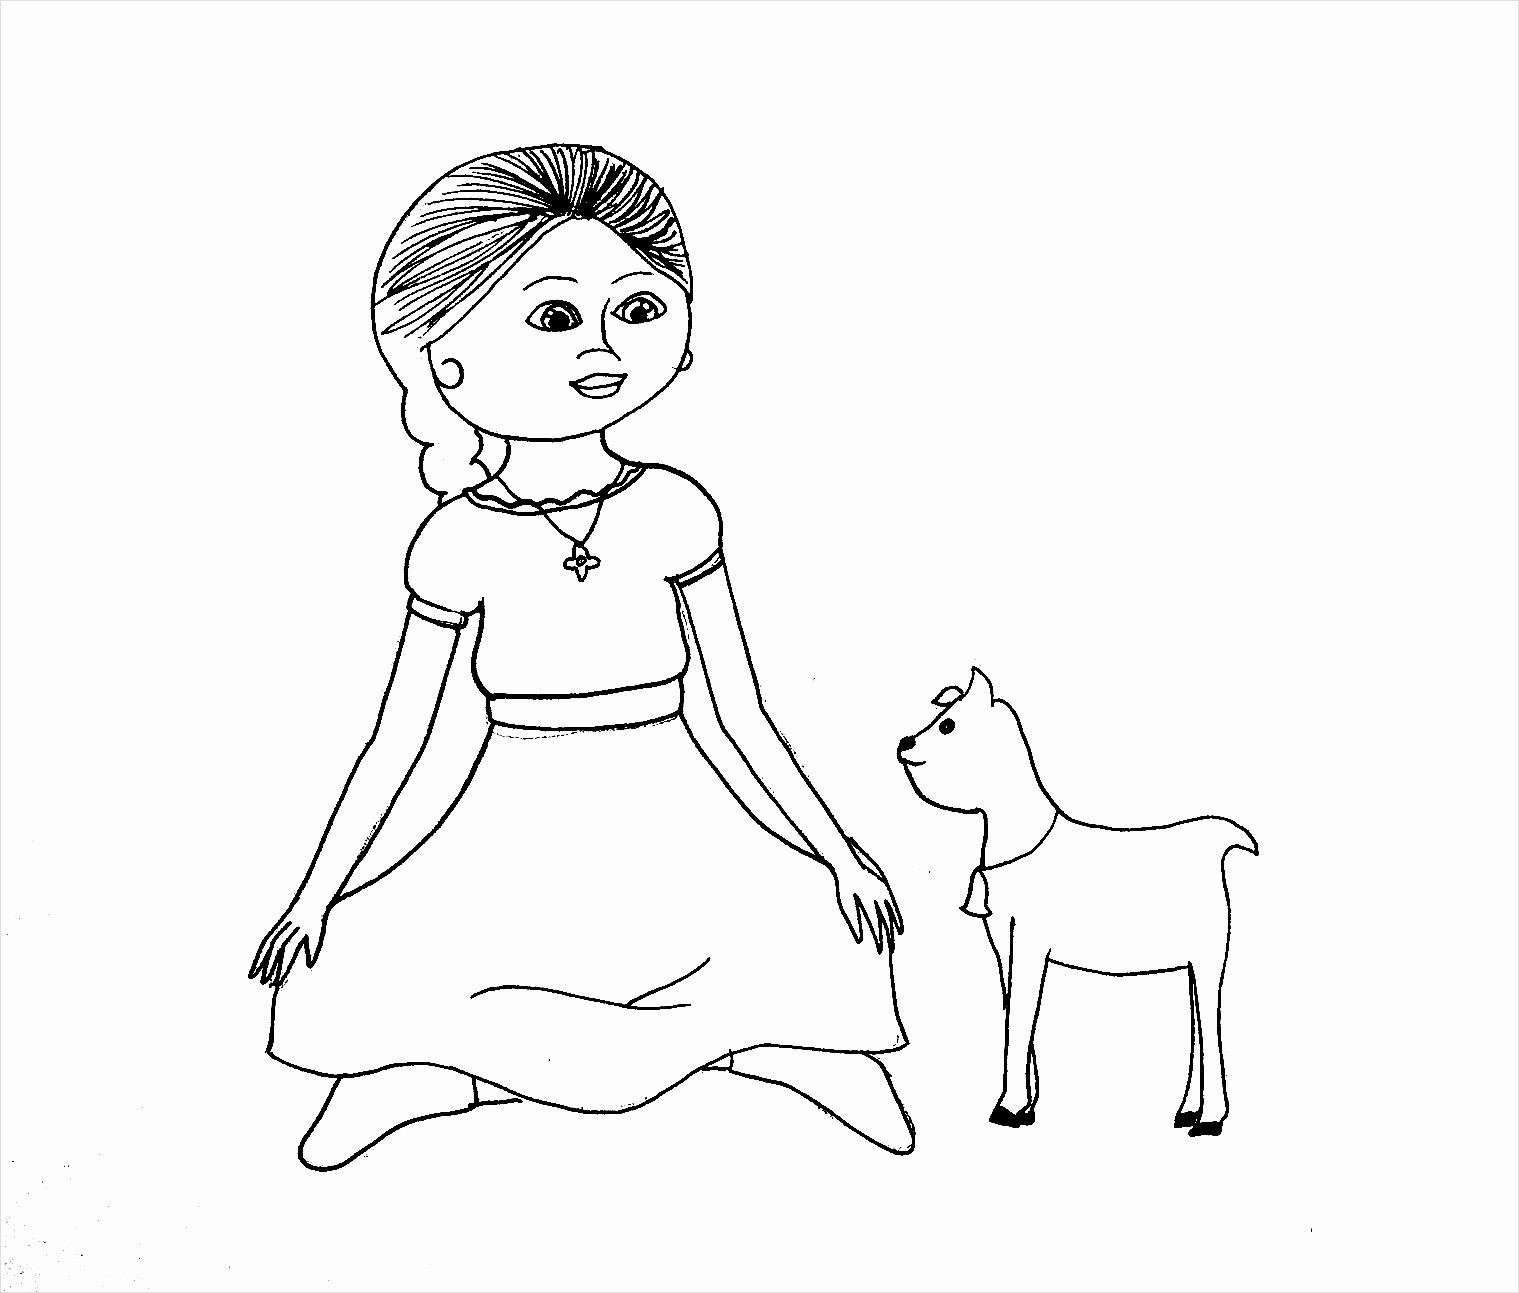 Chucky Coloring Pages American Girl Doll Coloring Pages Printable Free Chucky Colouring